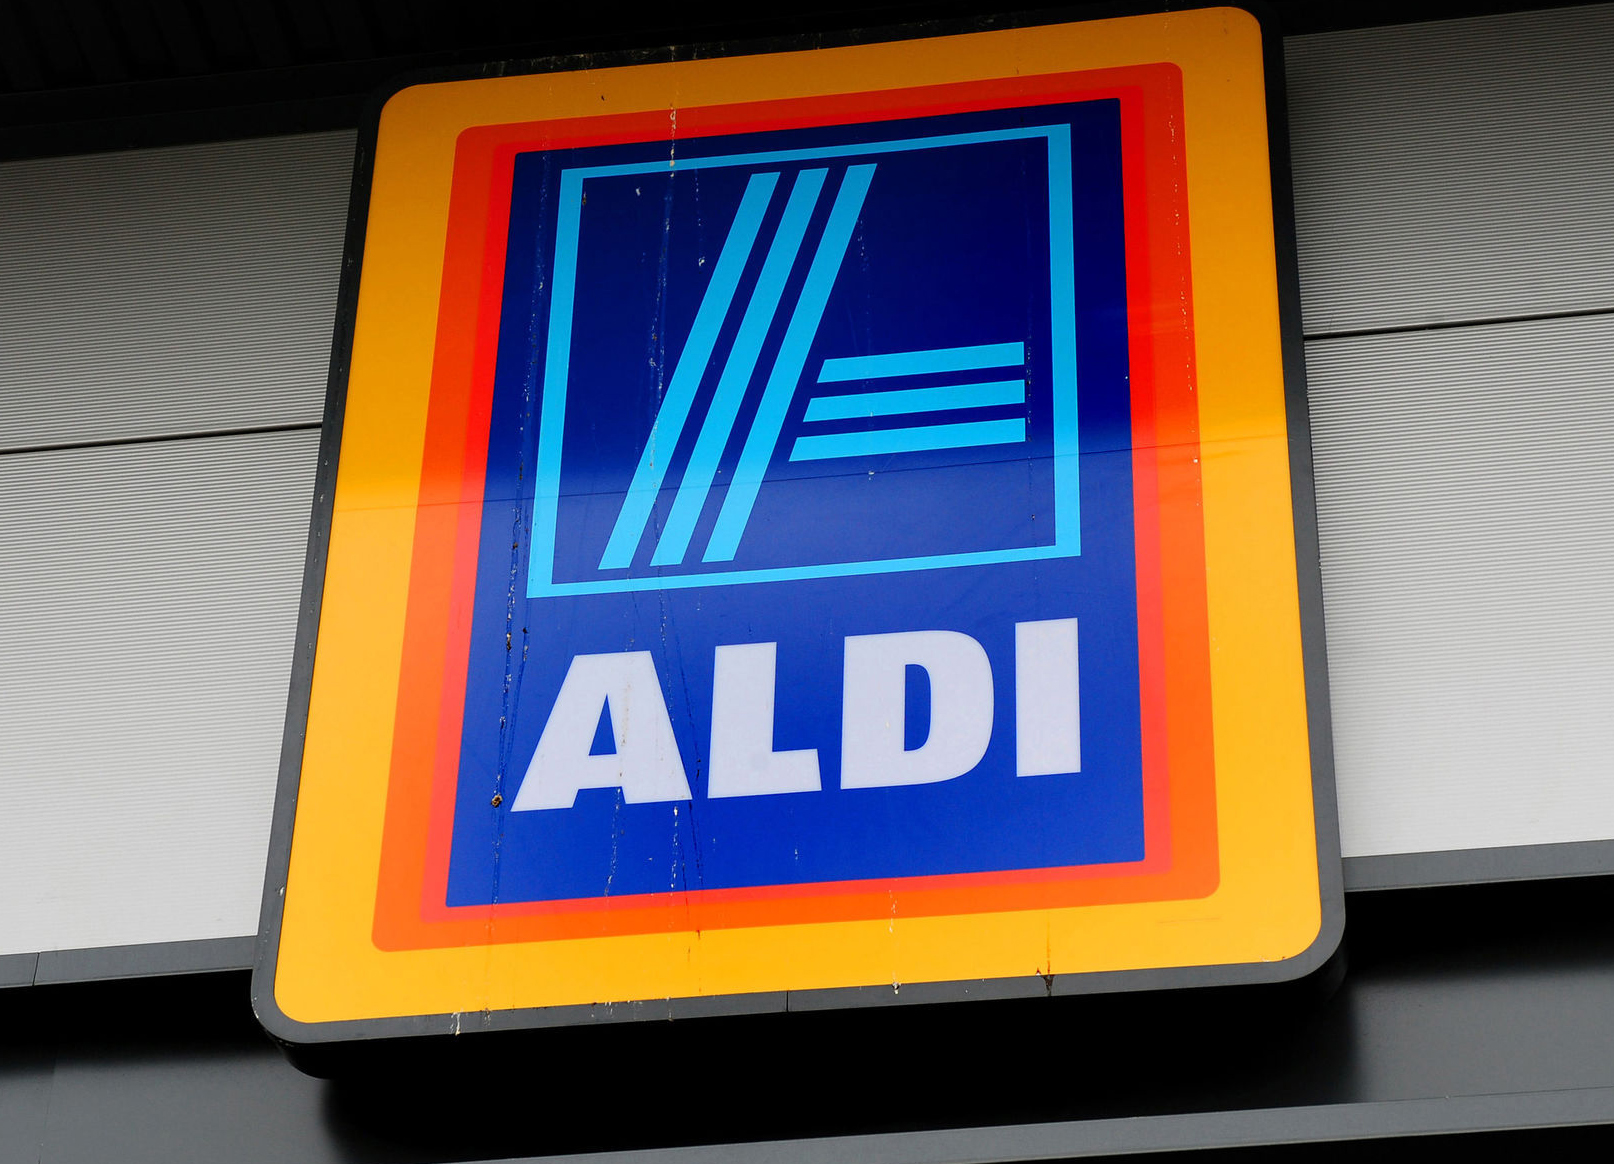 Aldi store in Chippy could finally be approved